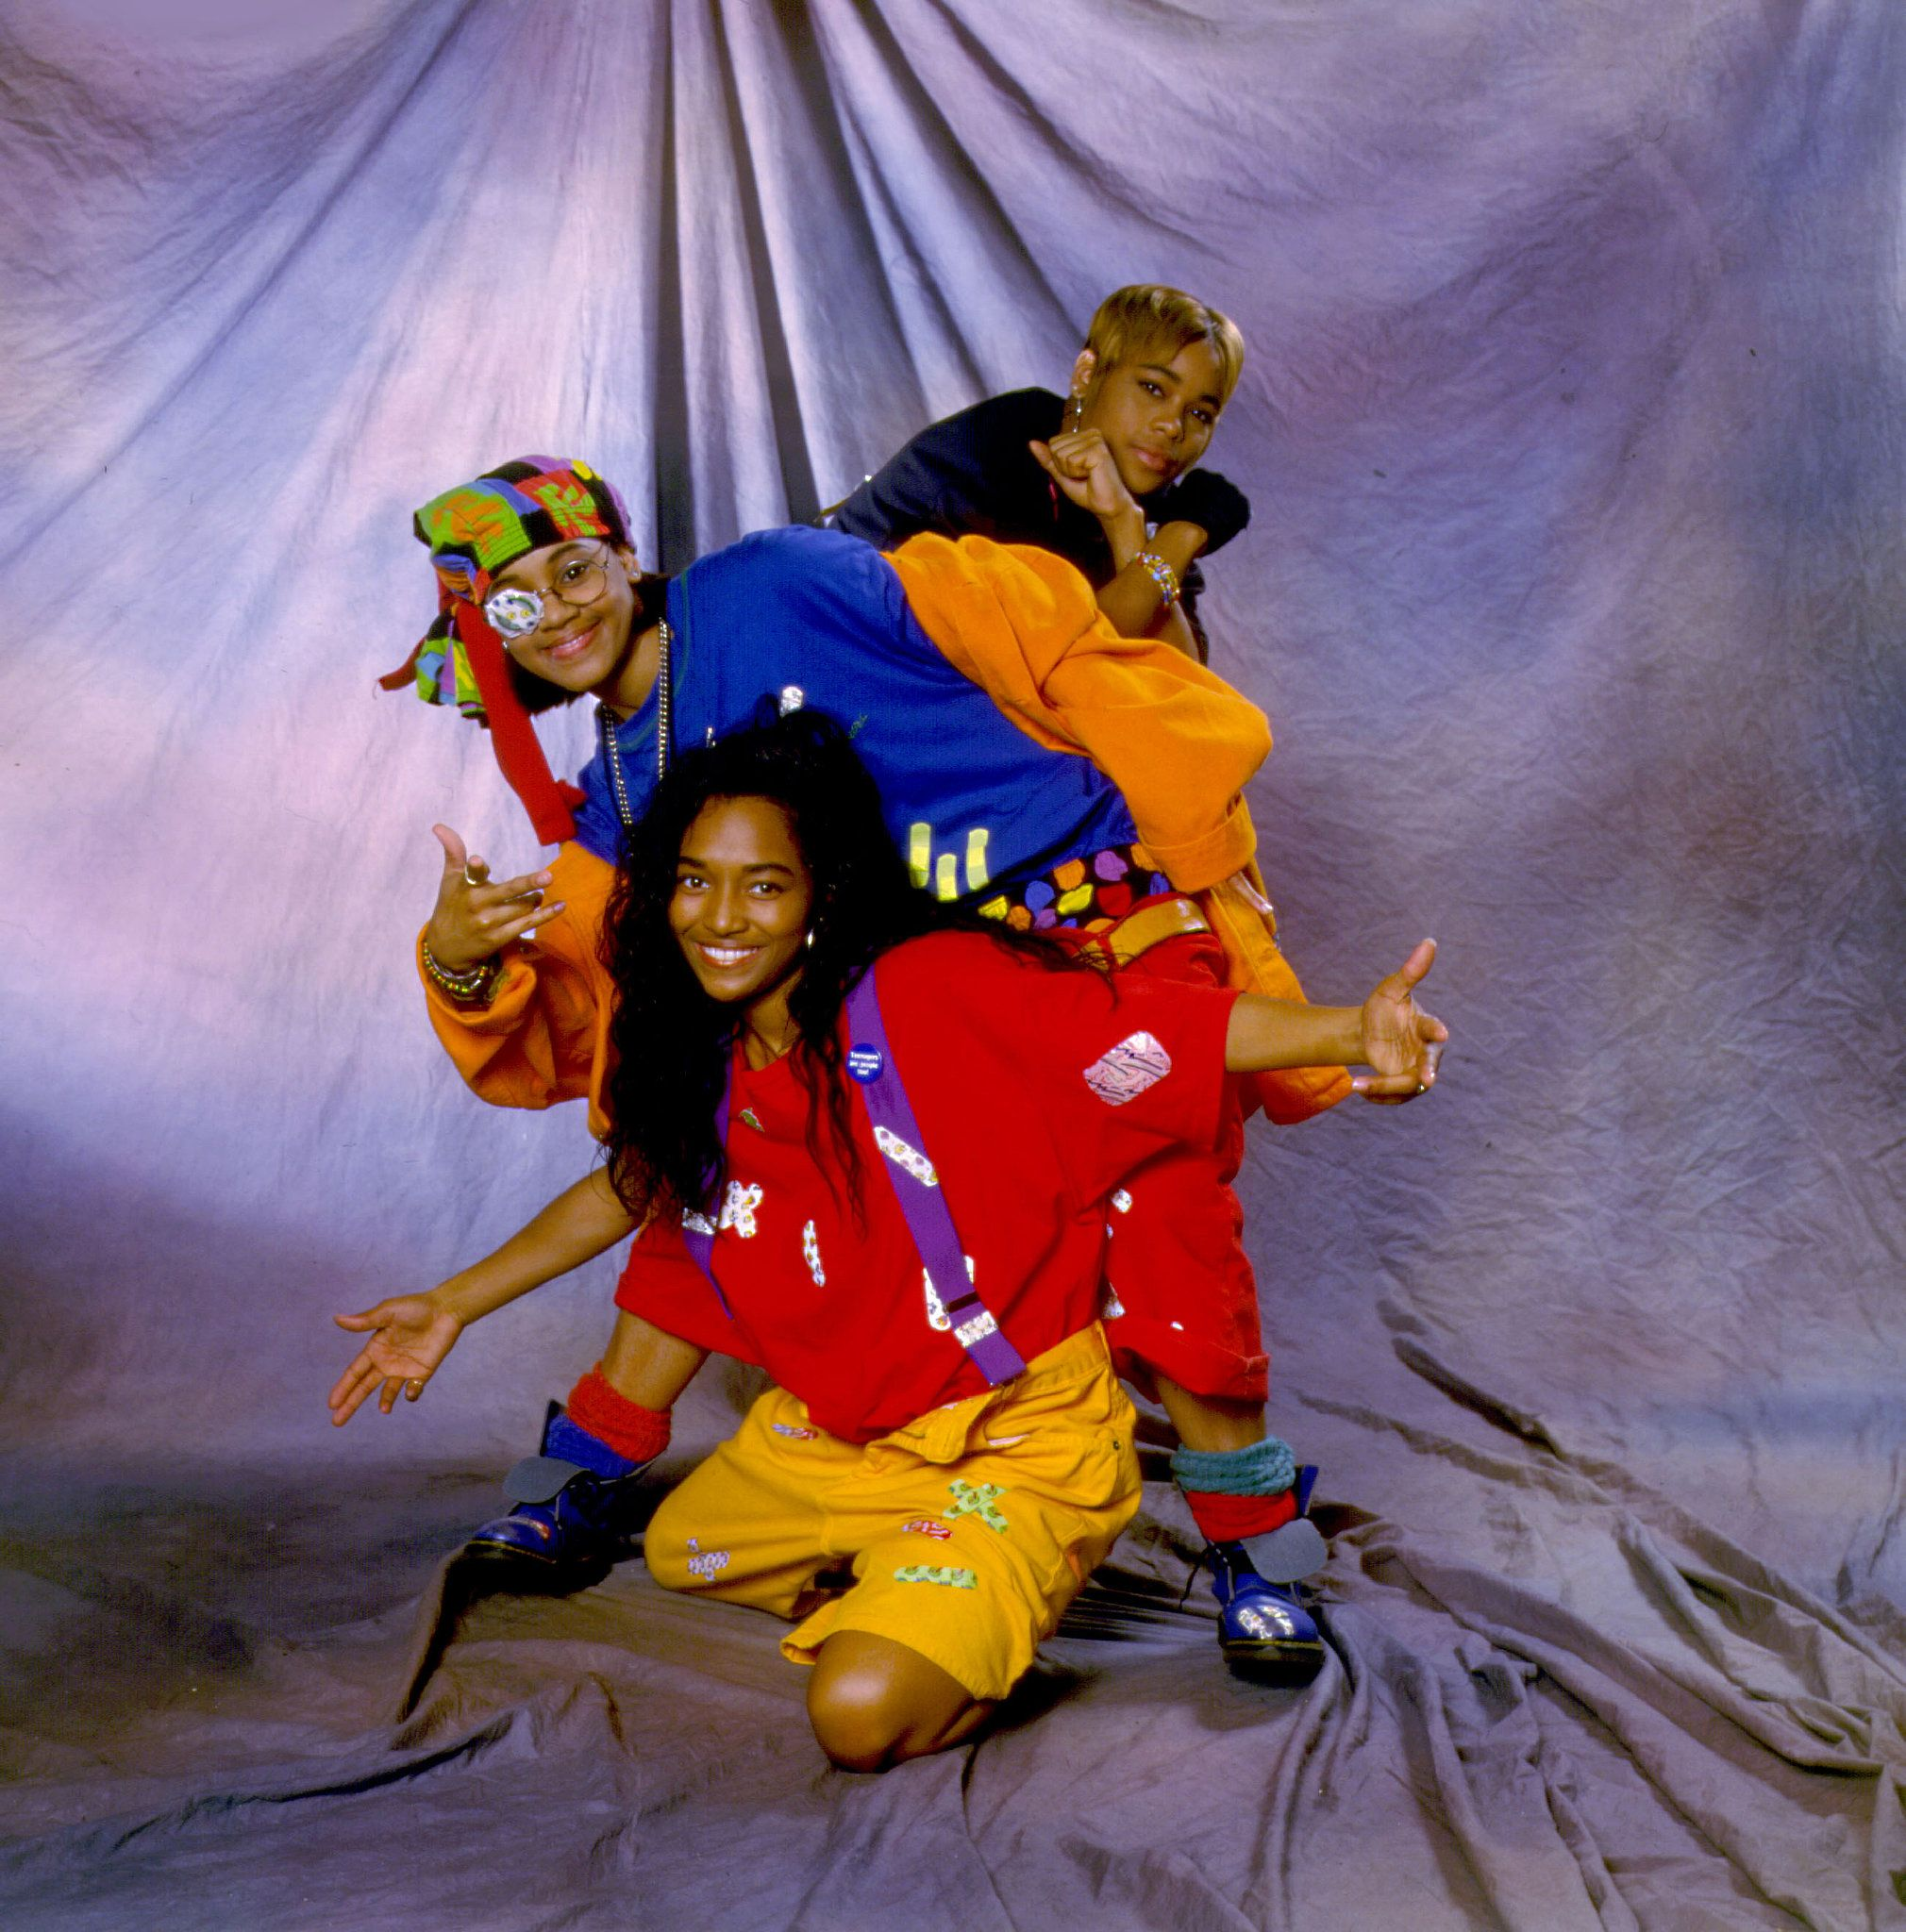 "To pull off Tionne ""T-Boz"" Watkins, Lisa ""Left Eye"" Lopes, and Rozonda ""Chilli"" Thomas of the R&B group TLC, you'll need bright, baggy clothes, caps turned backward, suspenders, and either a patch or a black mark under the eye of whoever's Left Eye. Going around singing ""Waterfalls"" is optional but advised."